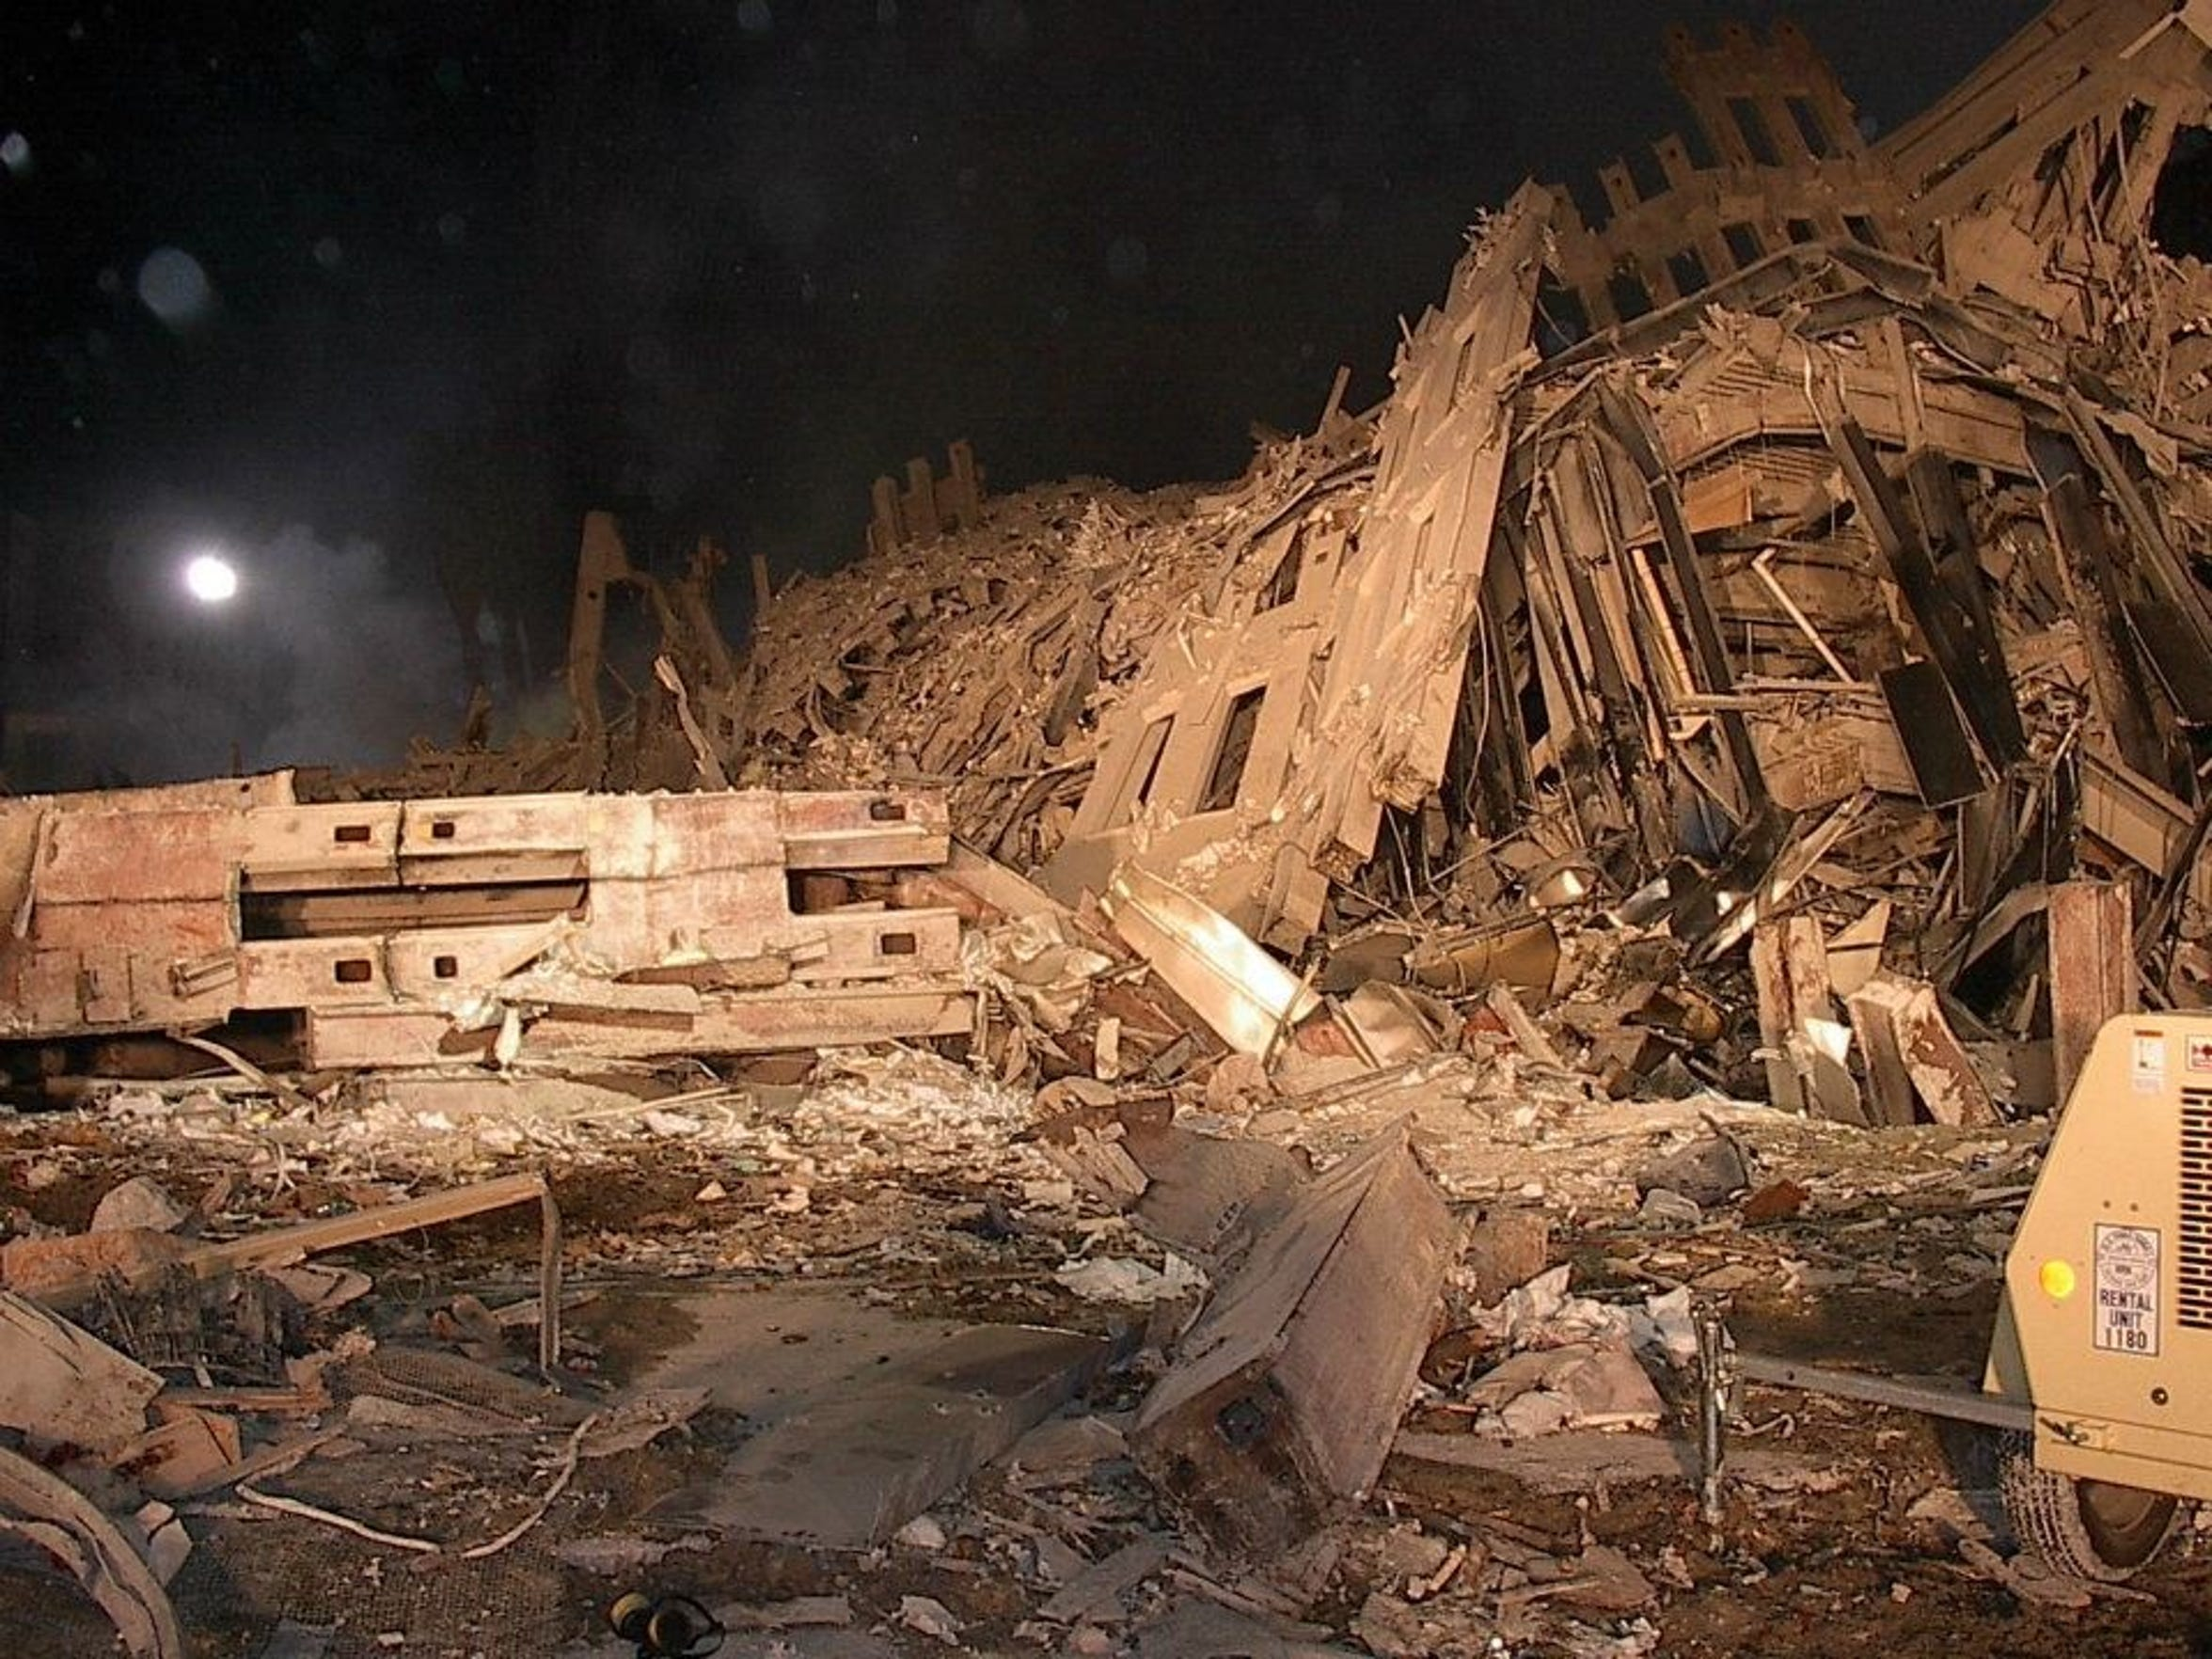 The World Trade Center site in New York City the night of Sept. 11, 2001. Photo courtesy of Nicholas Poliseno